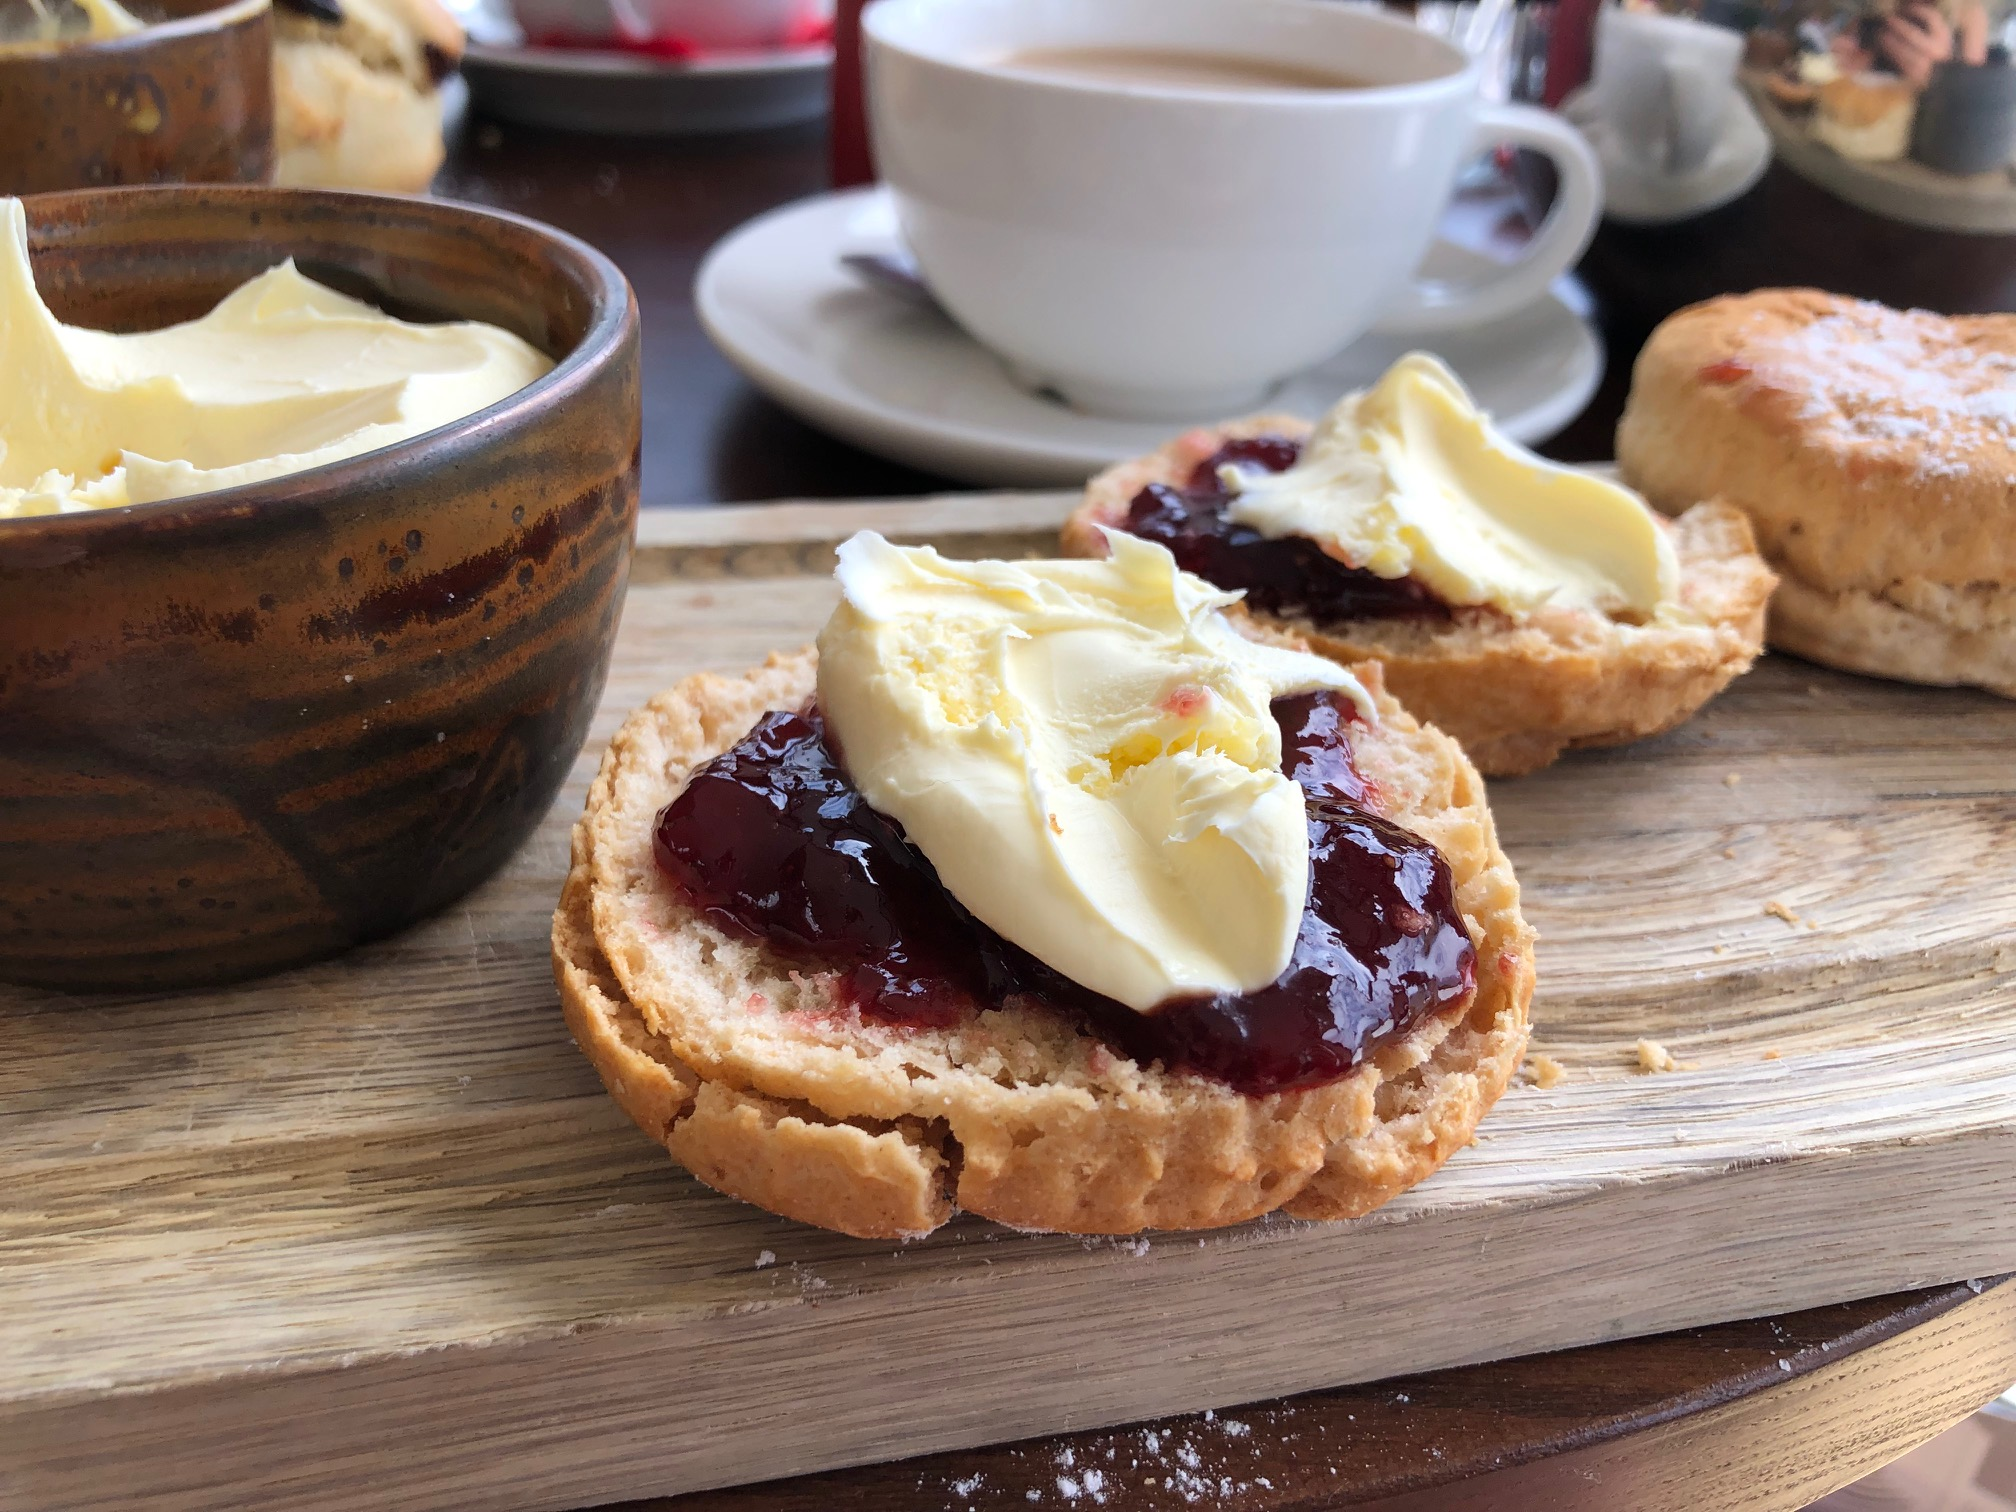 Hommade scone with jam and cream.